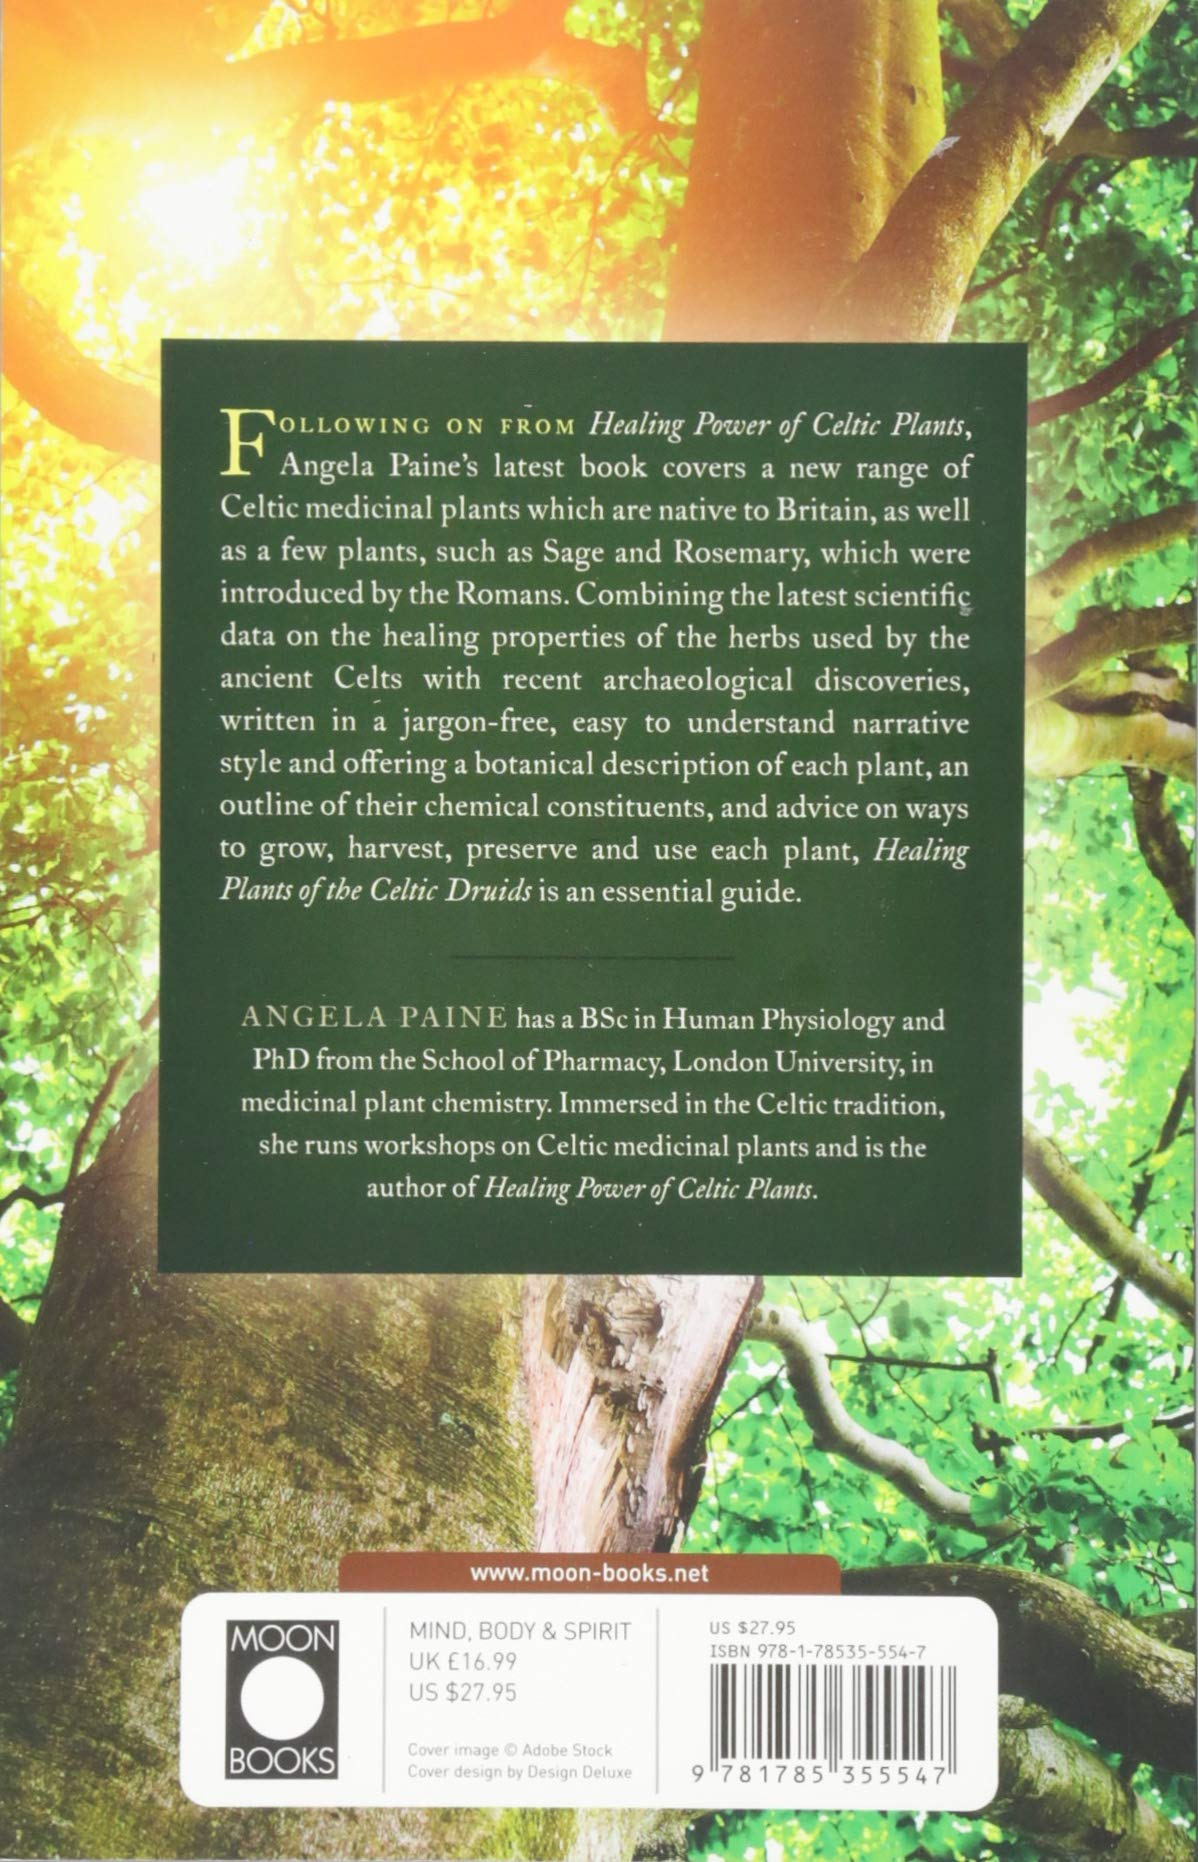 Healing Plants of the Celtic Druids: Ancient Celts in